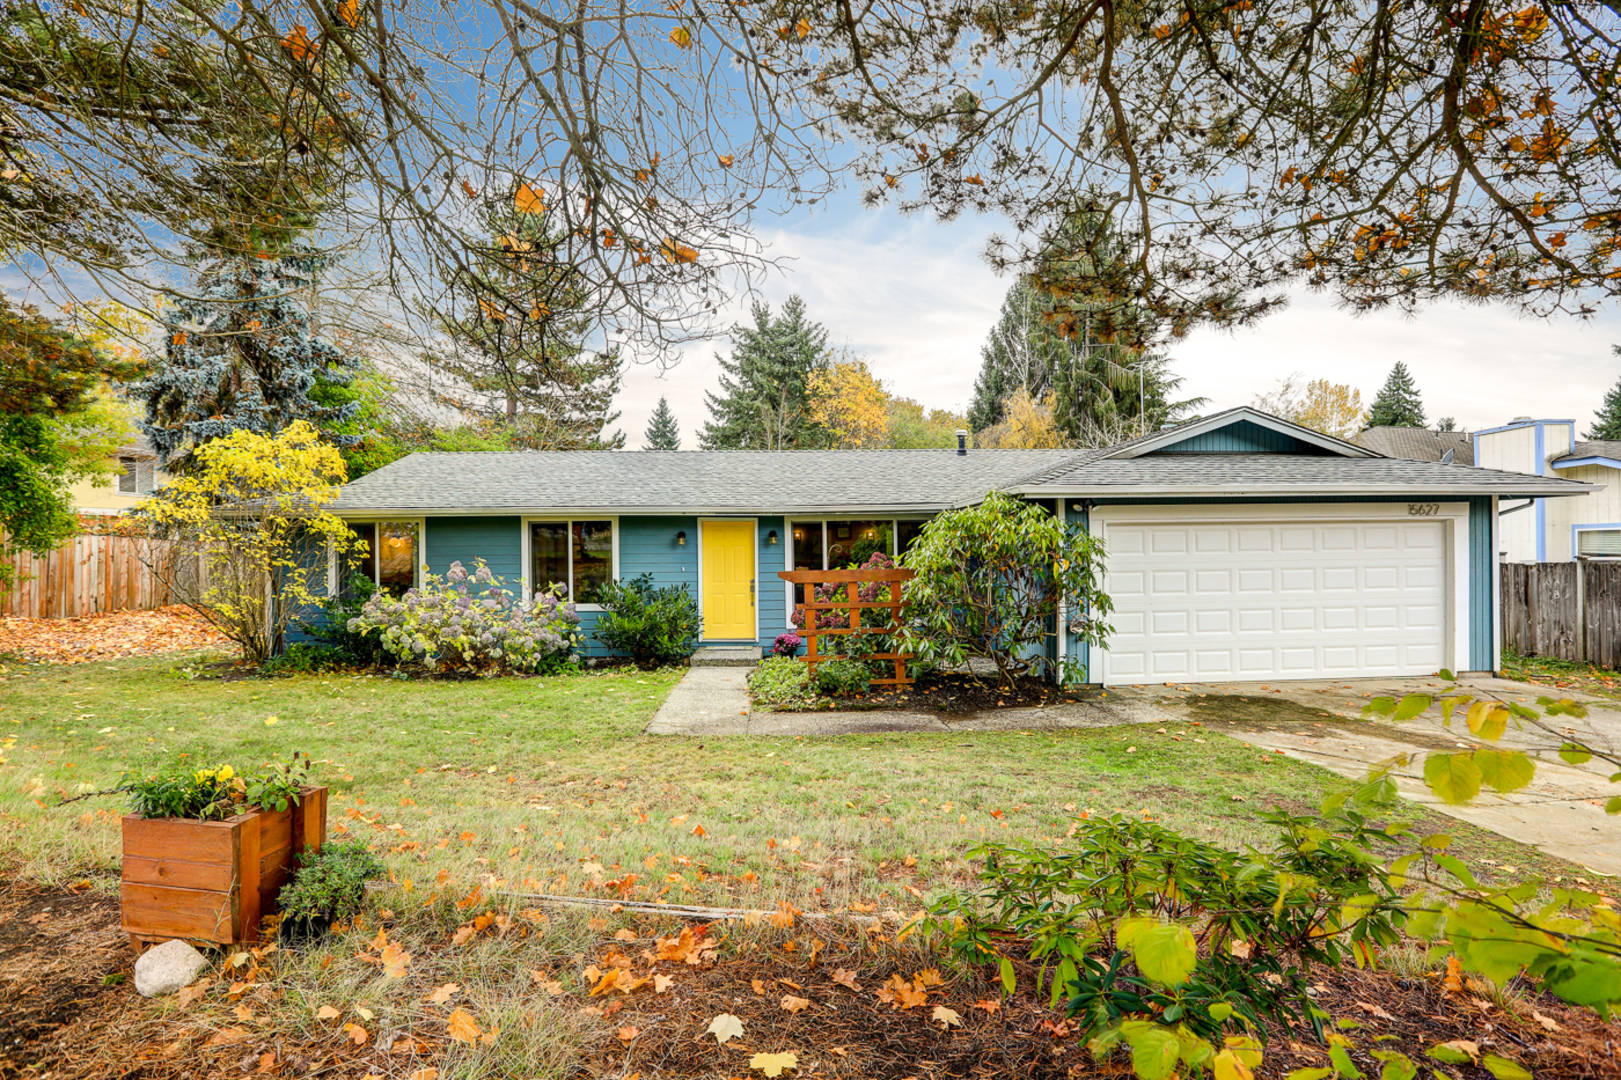 15627 NE 109th St. Redmond, WA 98052